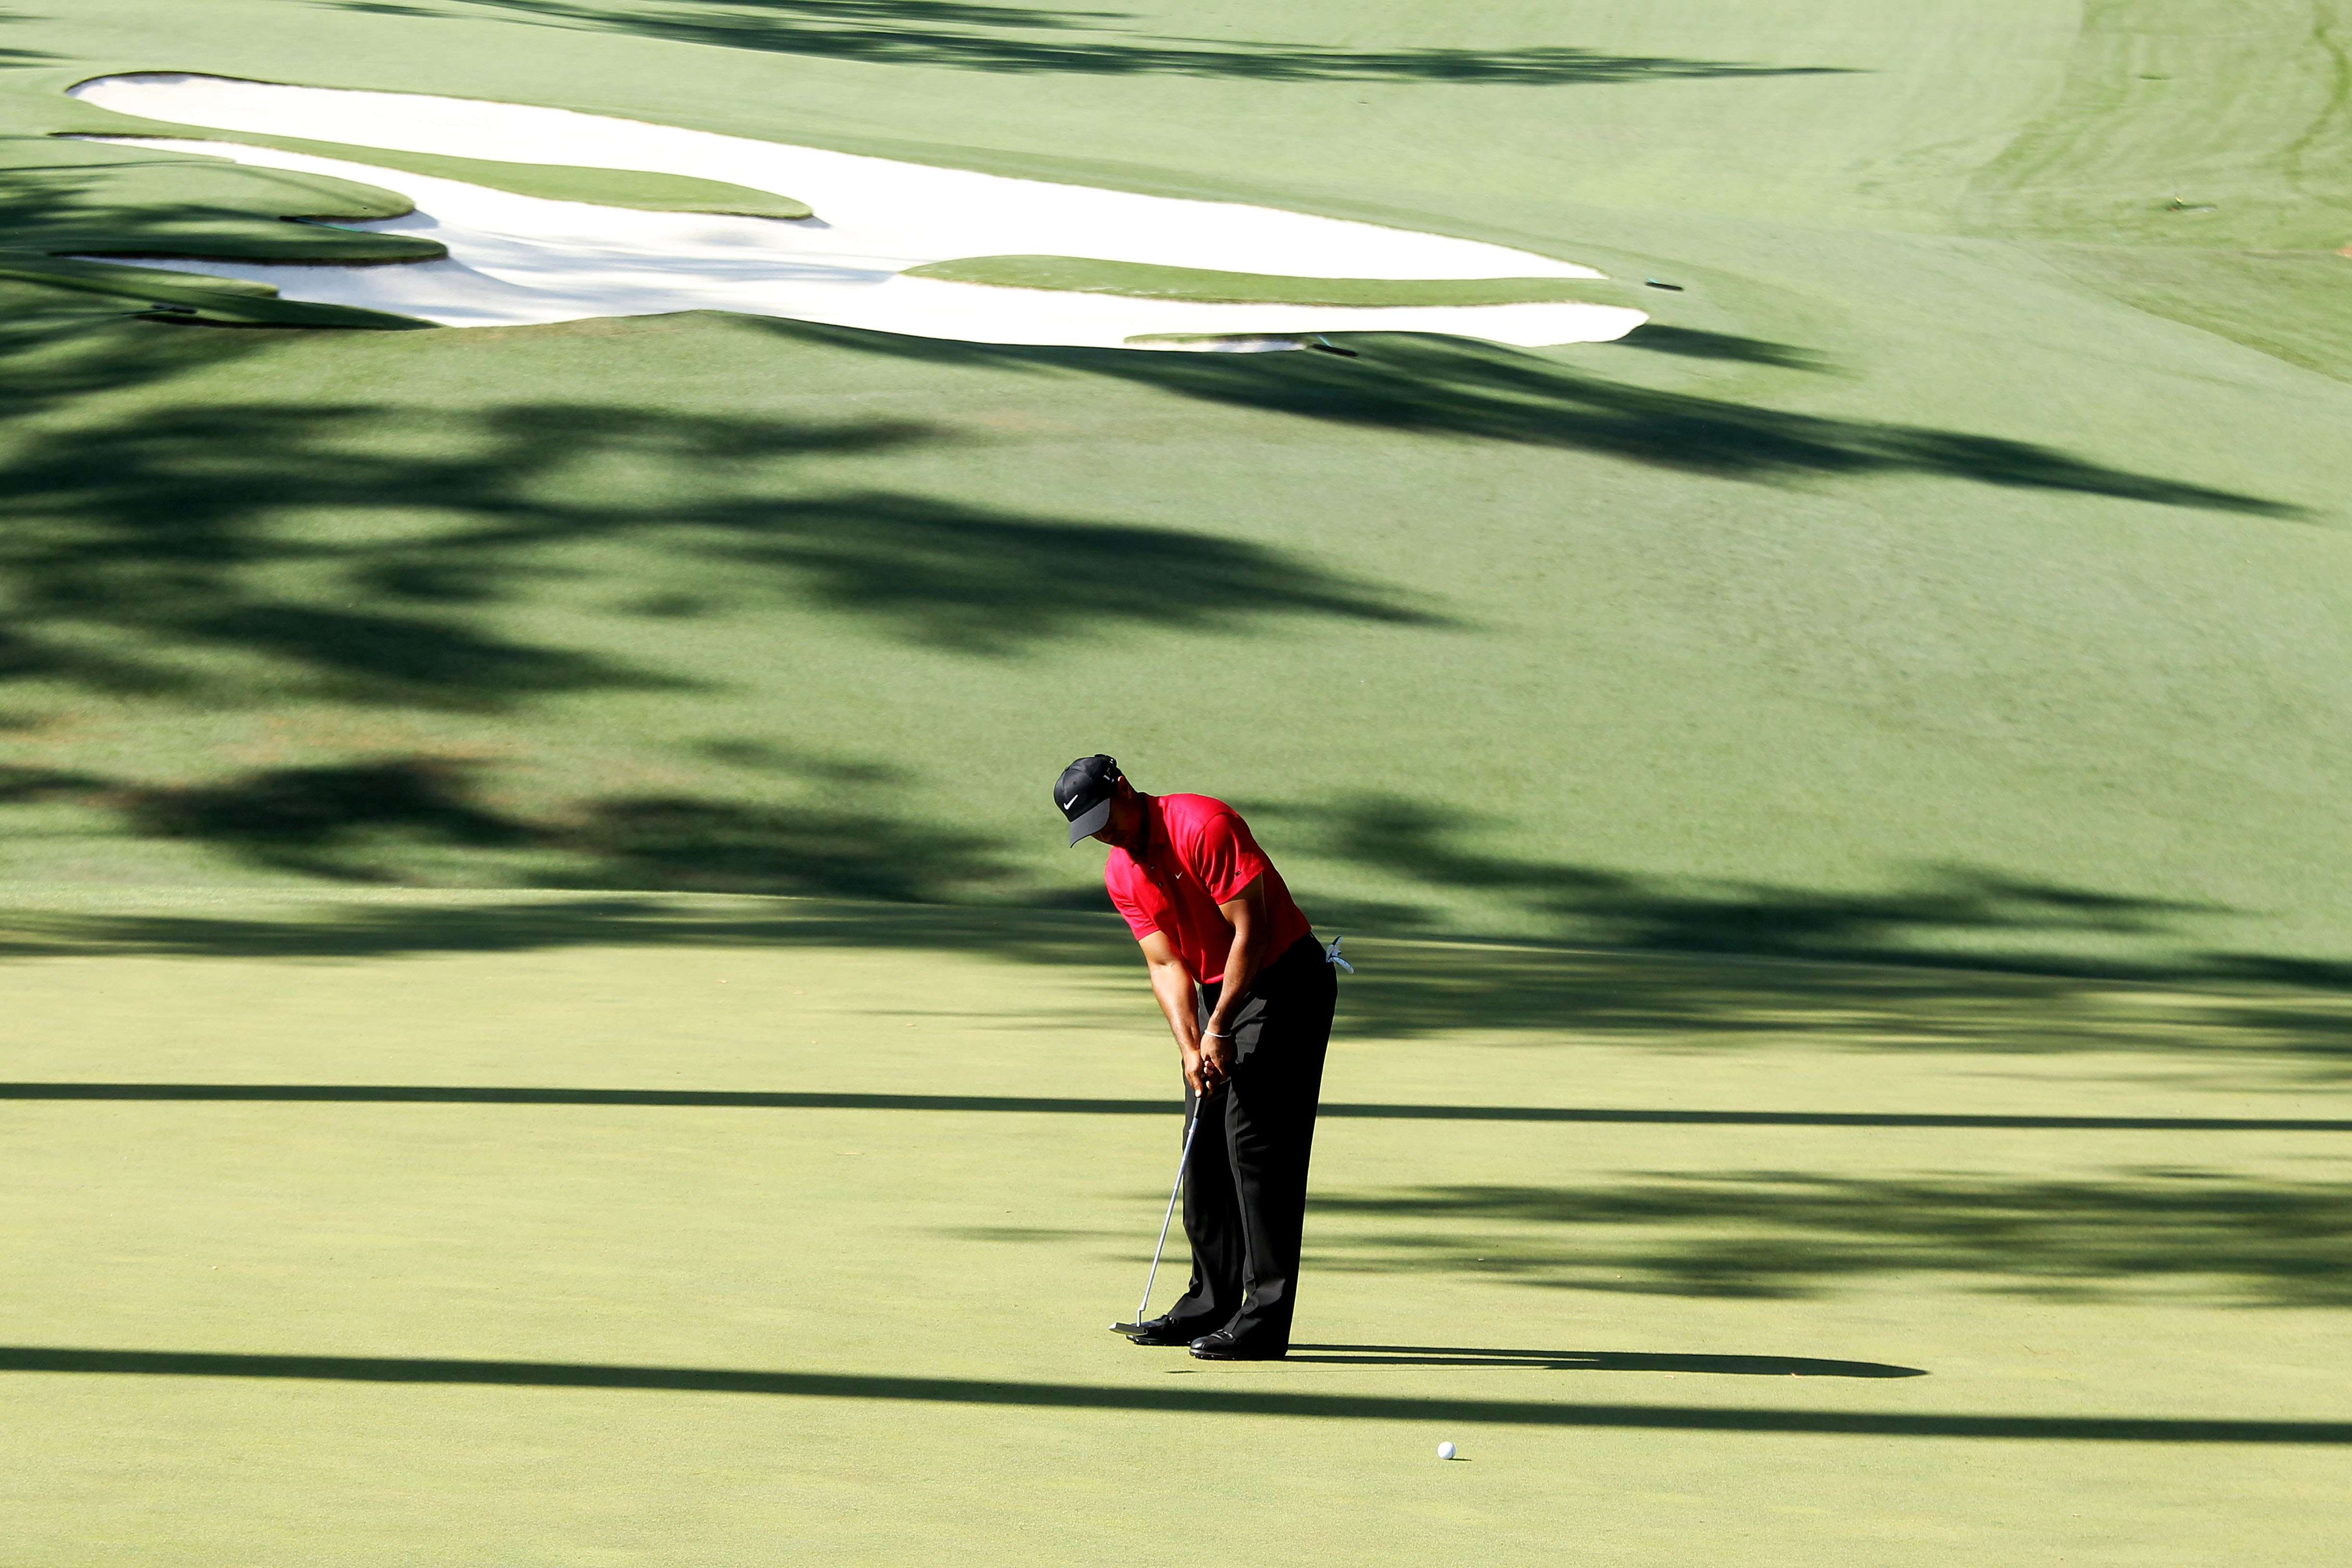 AUGUSTA, GA - APRIL 11:  Tiger Woods putts on the tenth green during the final round of the 2010 Masters Tournament at Augusta National Golf Club on April 11, 2010 in Augusta, Georgia.  (Photo by David Cannon/Getty Images)